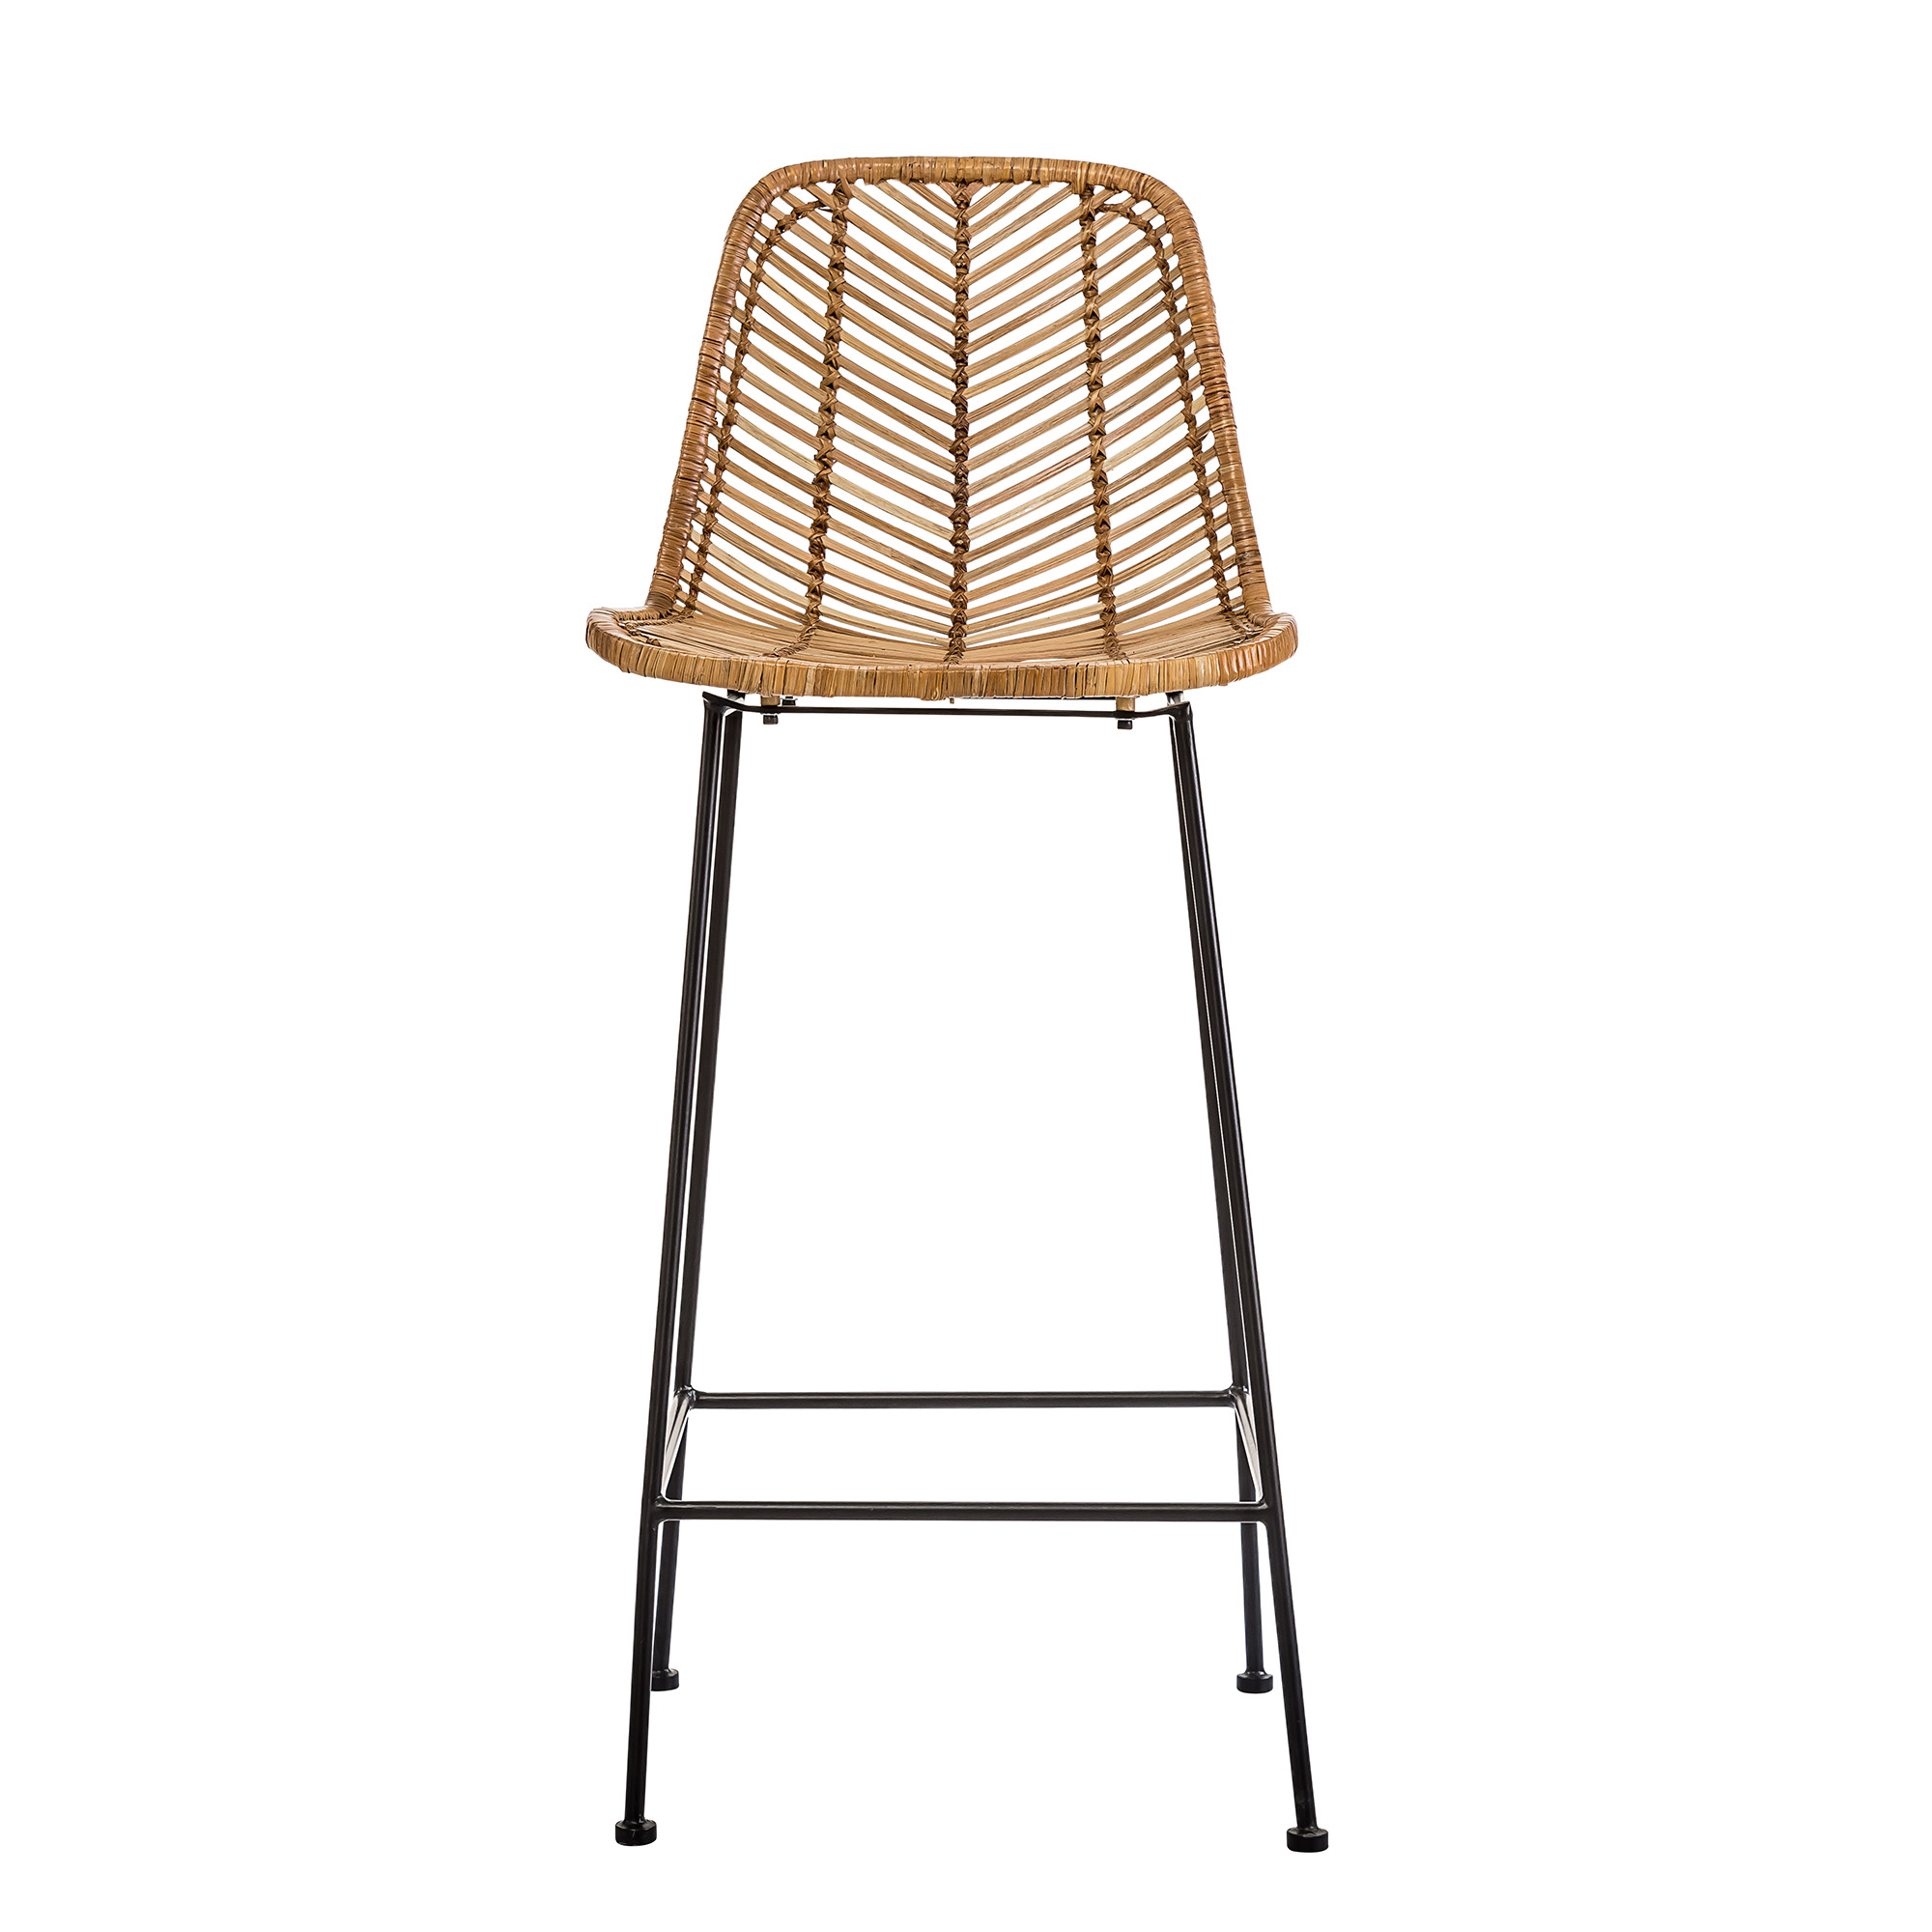 Image of   Bloomingville Fay Bar Stol - Natur Rattan